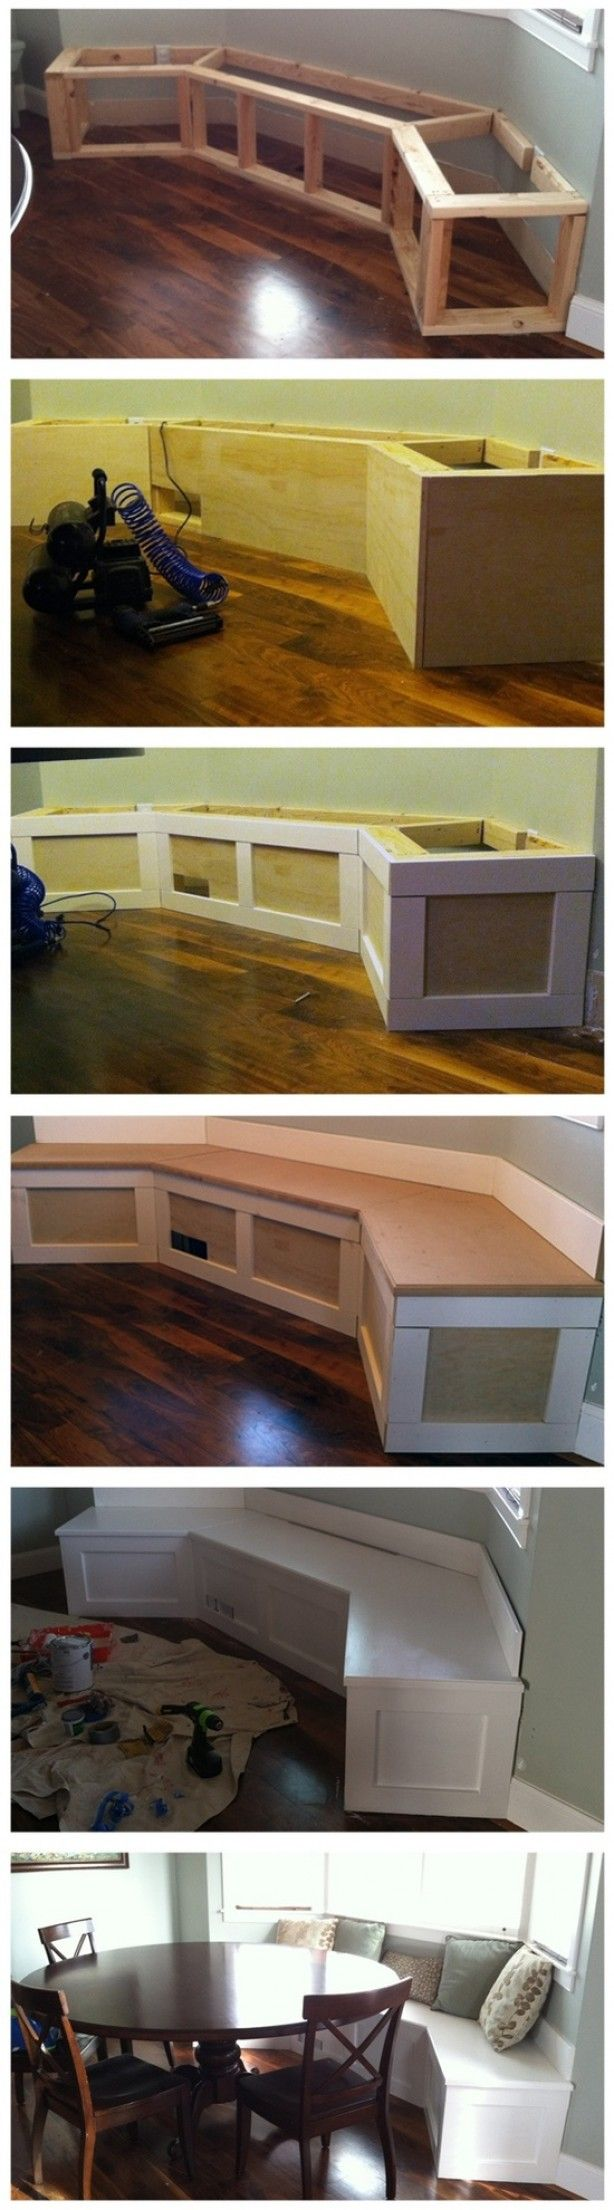 How to build-Seating space. You could make the top sections have hinged doors for storage.